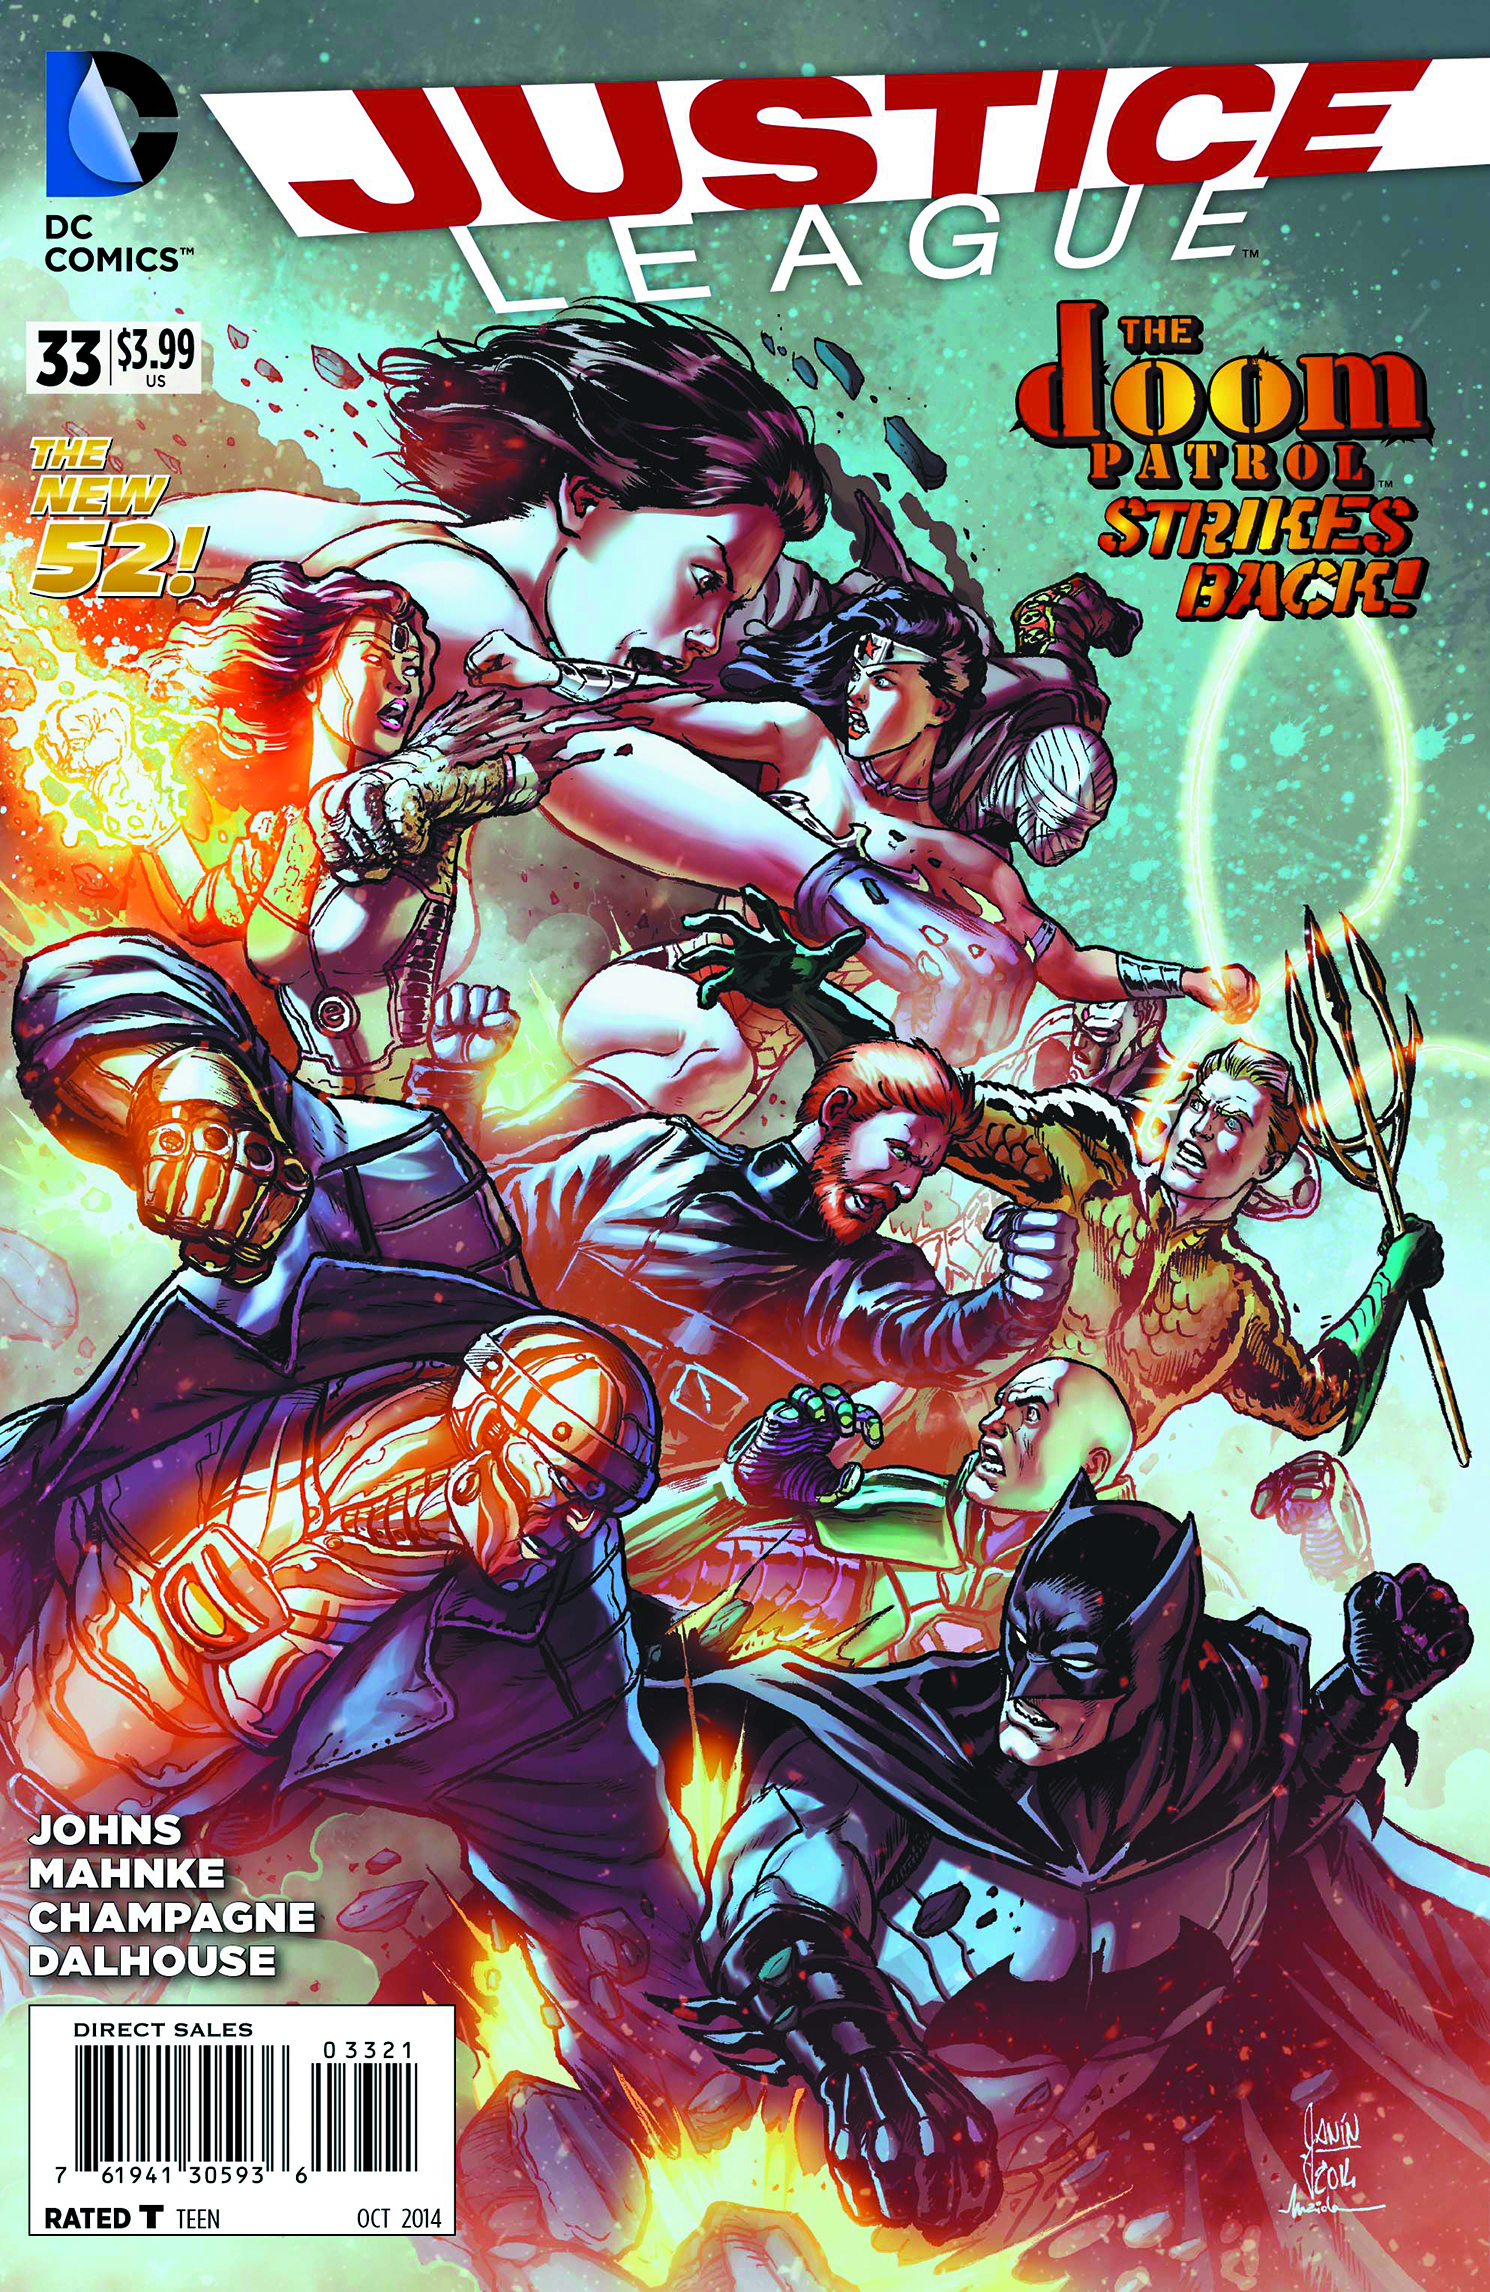 JUSTICE LEAGUE #33 VAR ED